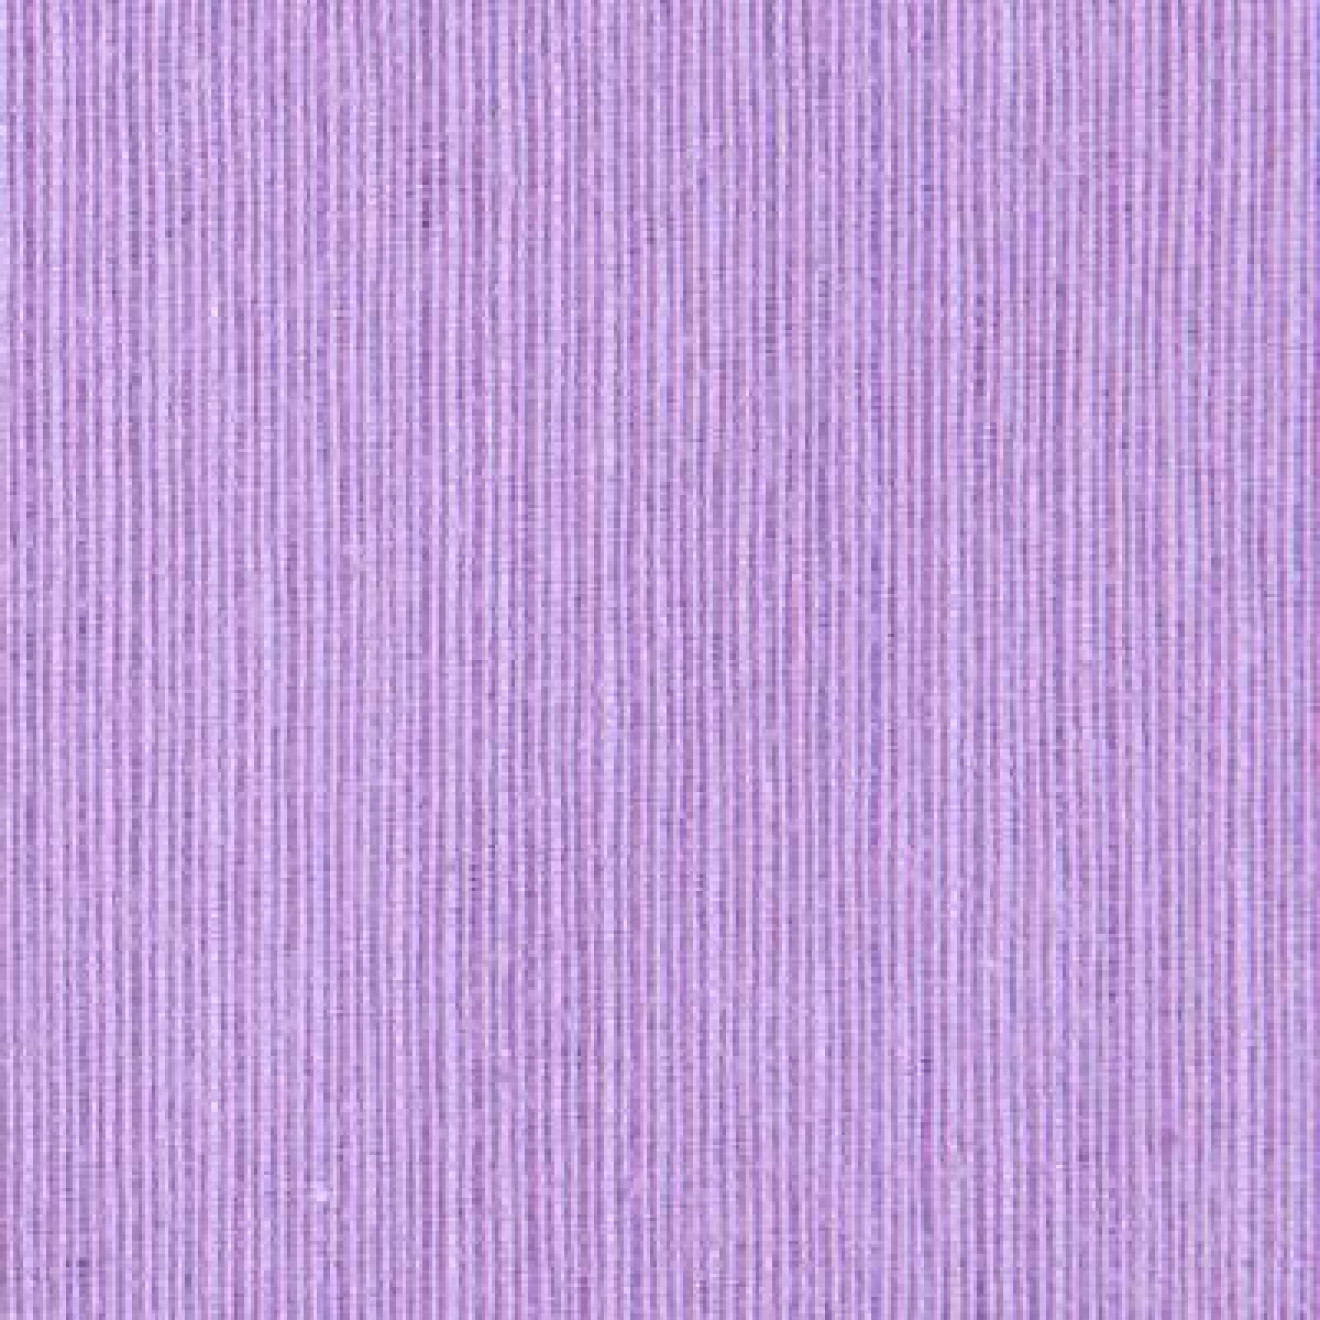 Dreieck - Acrylstoff Loneta Color 139